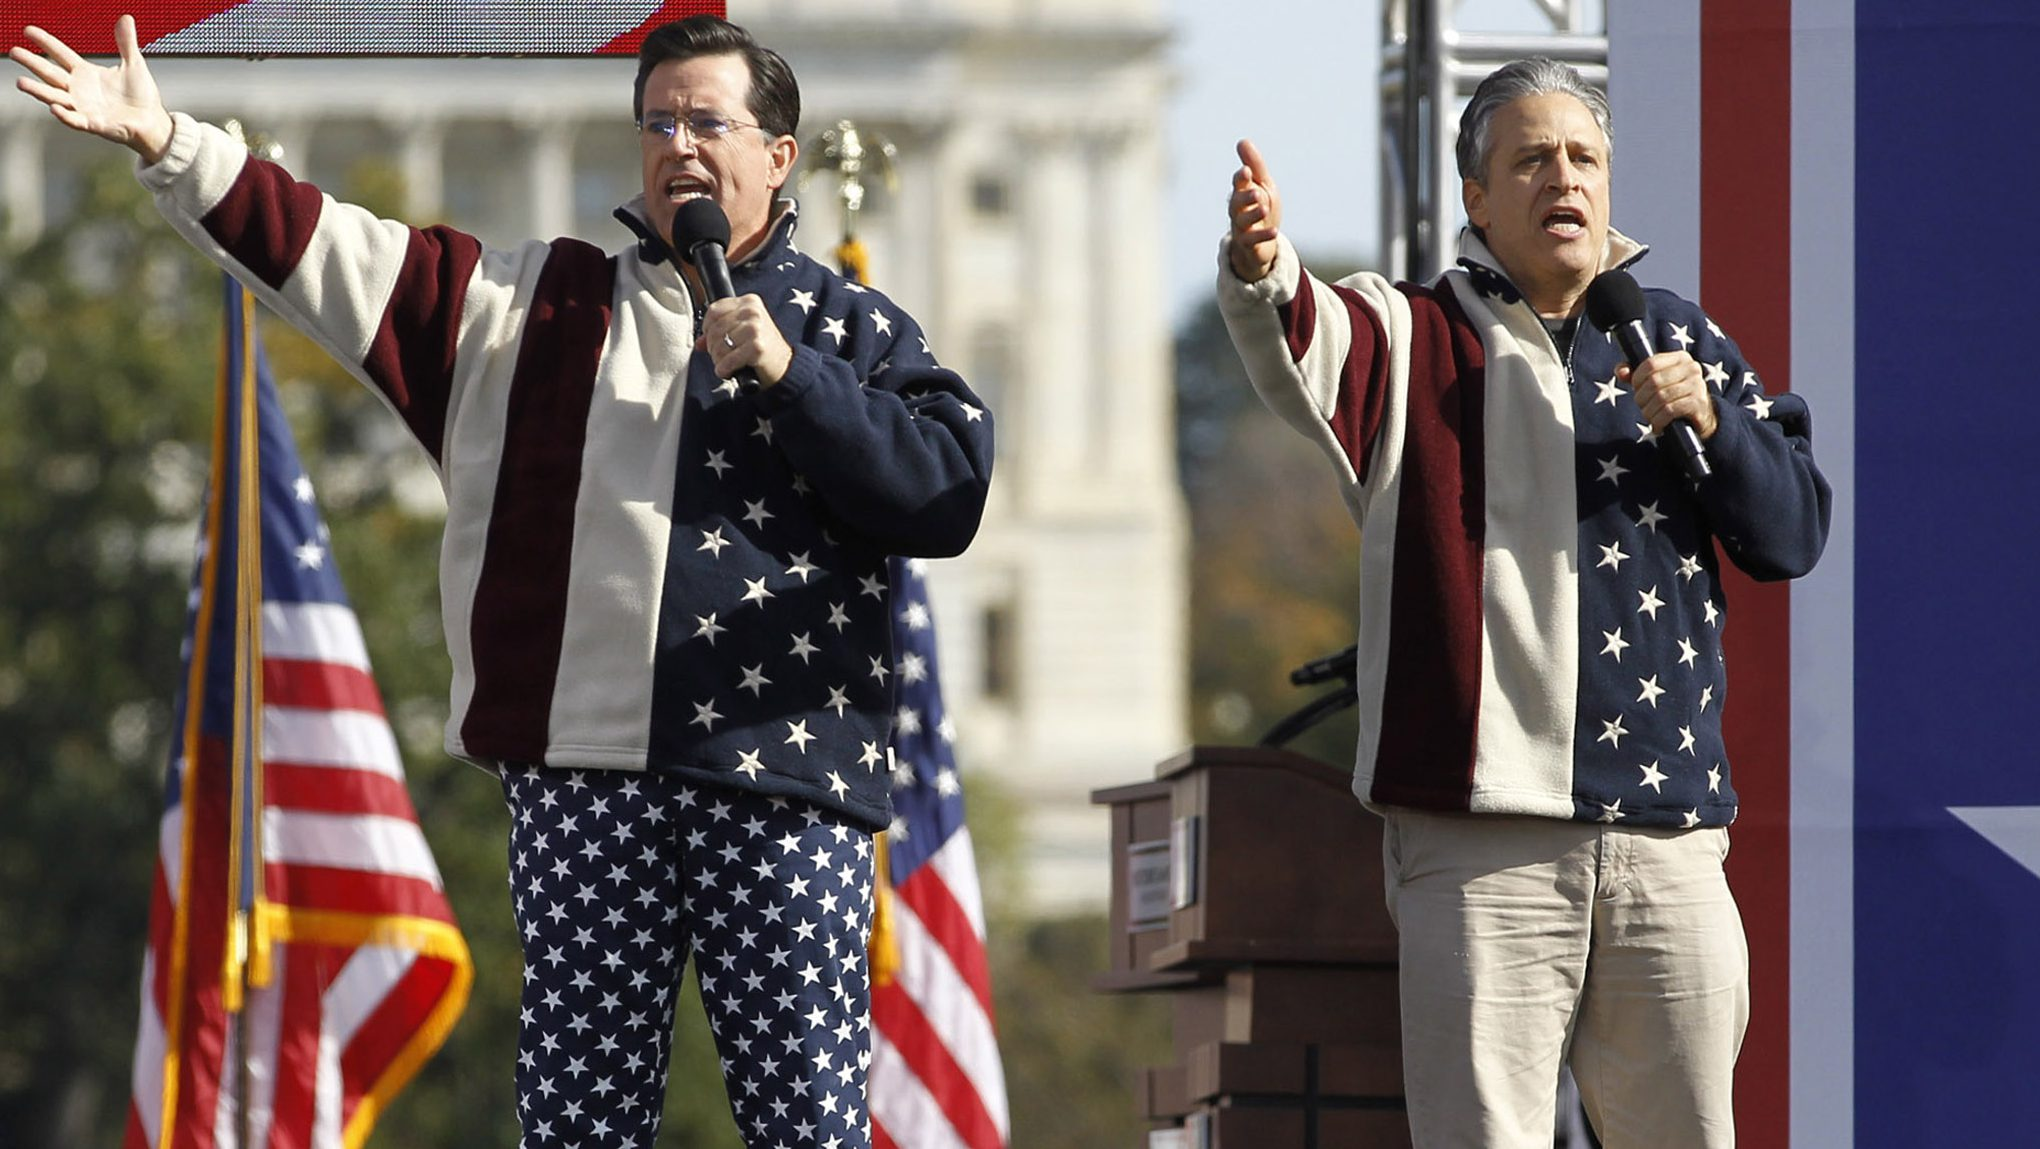 John Stewart and Stephen Colbert during the Rally to Restore Sanity and/or/Fear in Washington